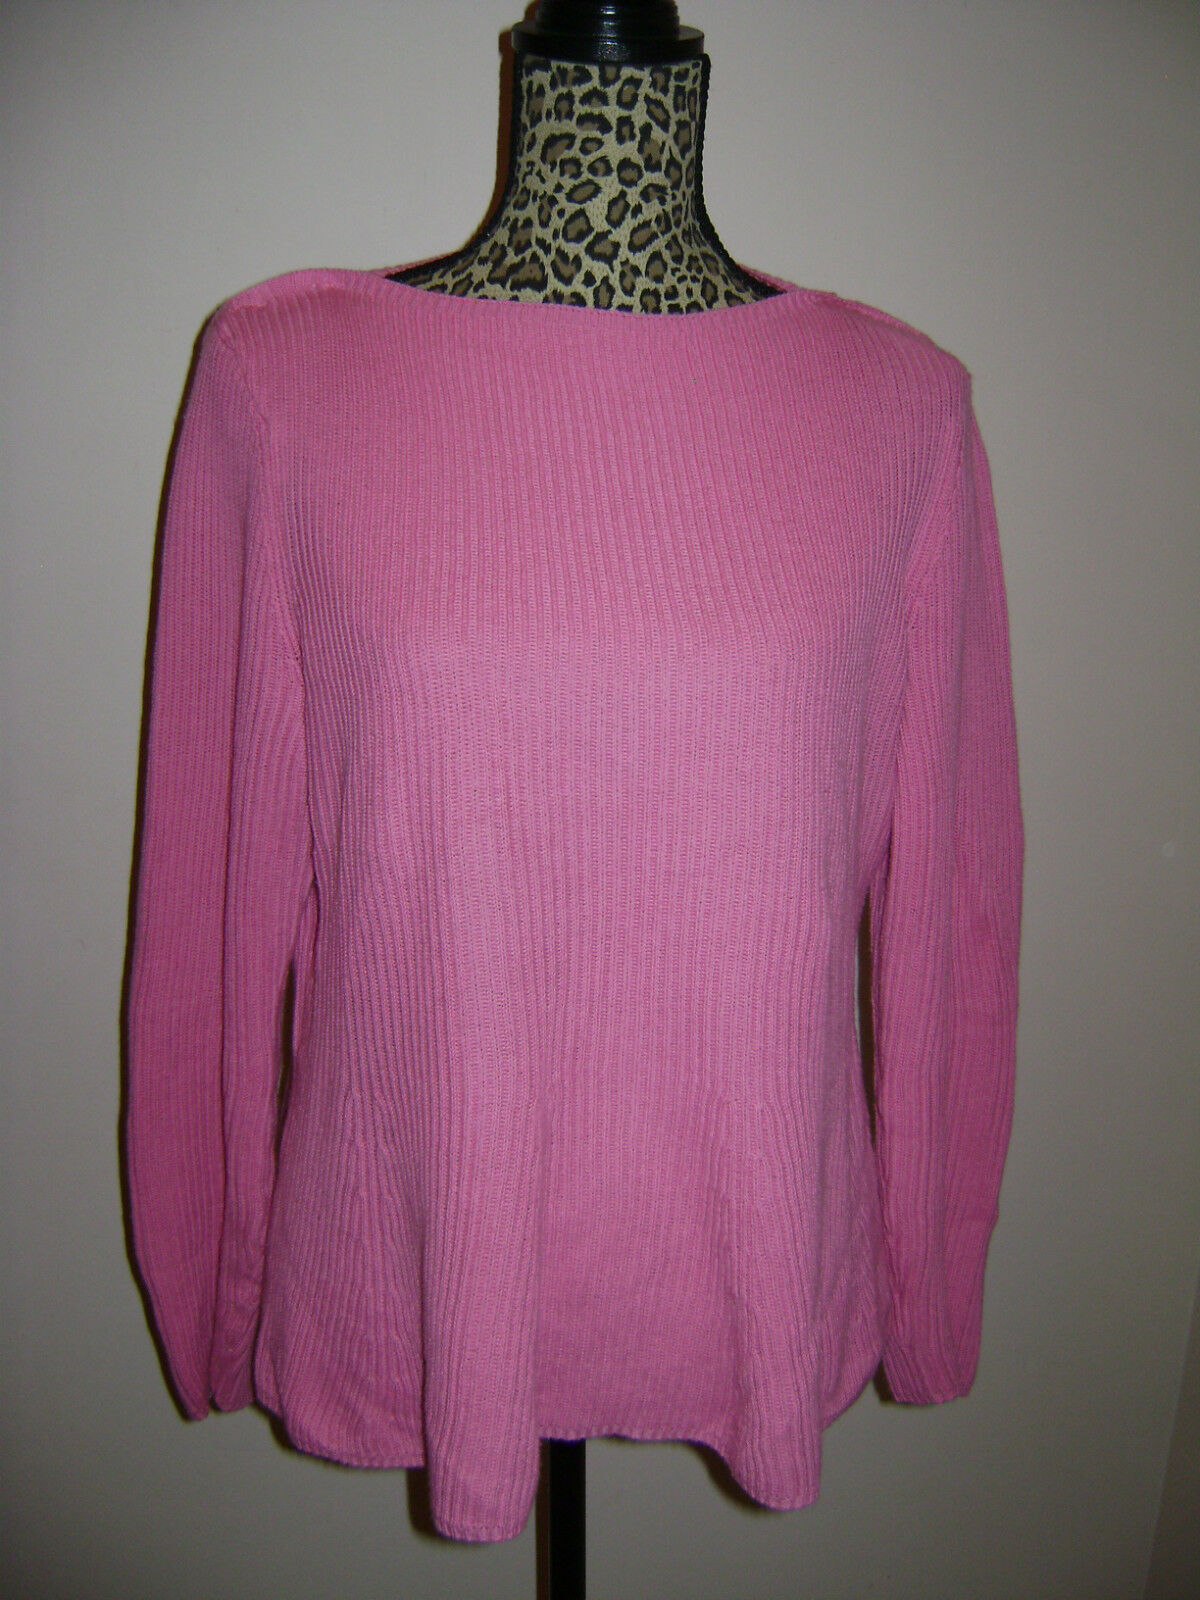 RALPH LAUREN EXCLUSIVE WOMEN SWEATER TOP SHIRT size L PINK 100% COTTON STUNNING